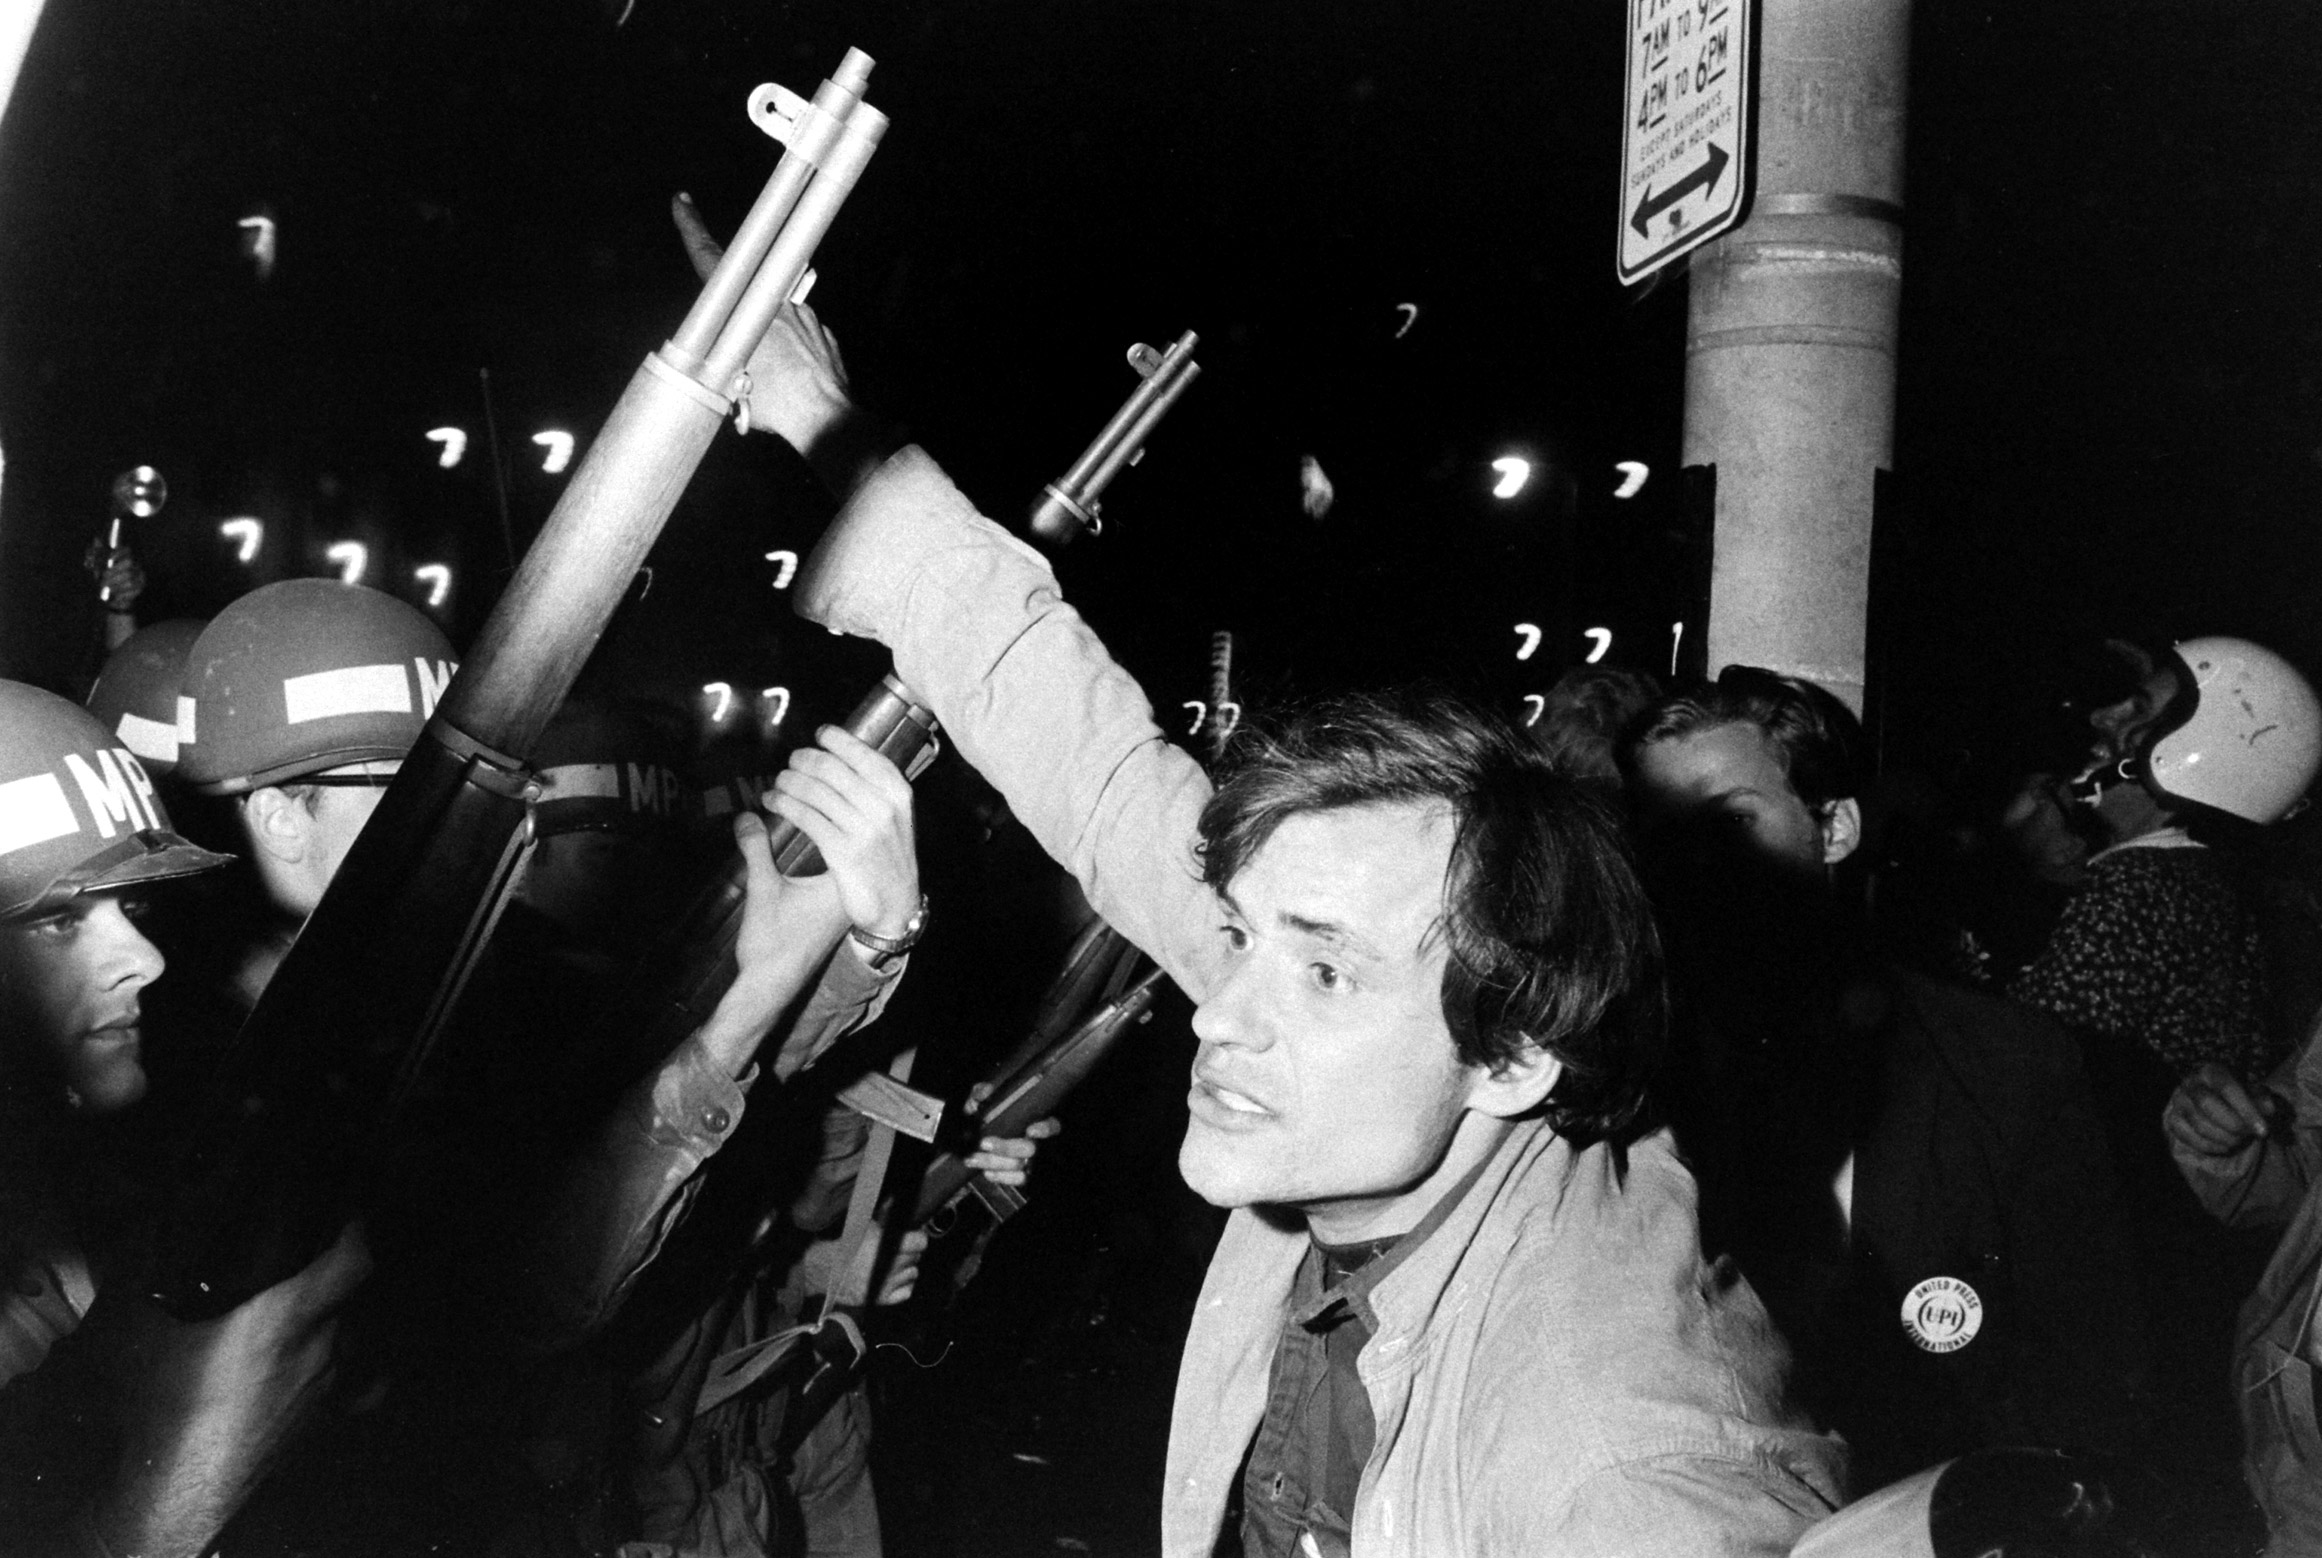 Protests at the Democratic Convention in Chicago, August 1968.